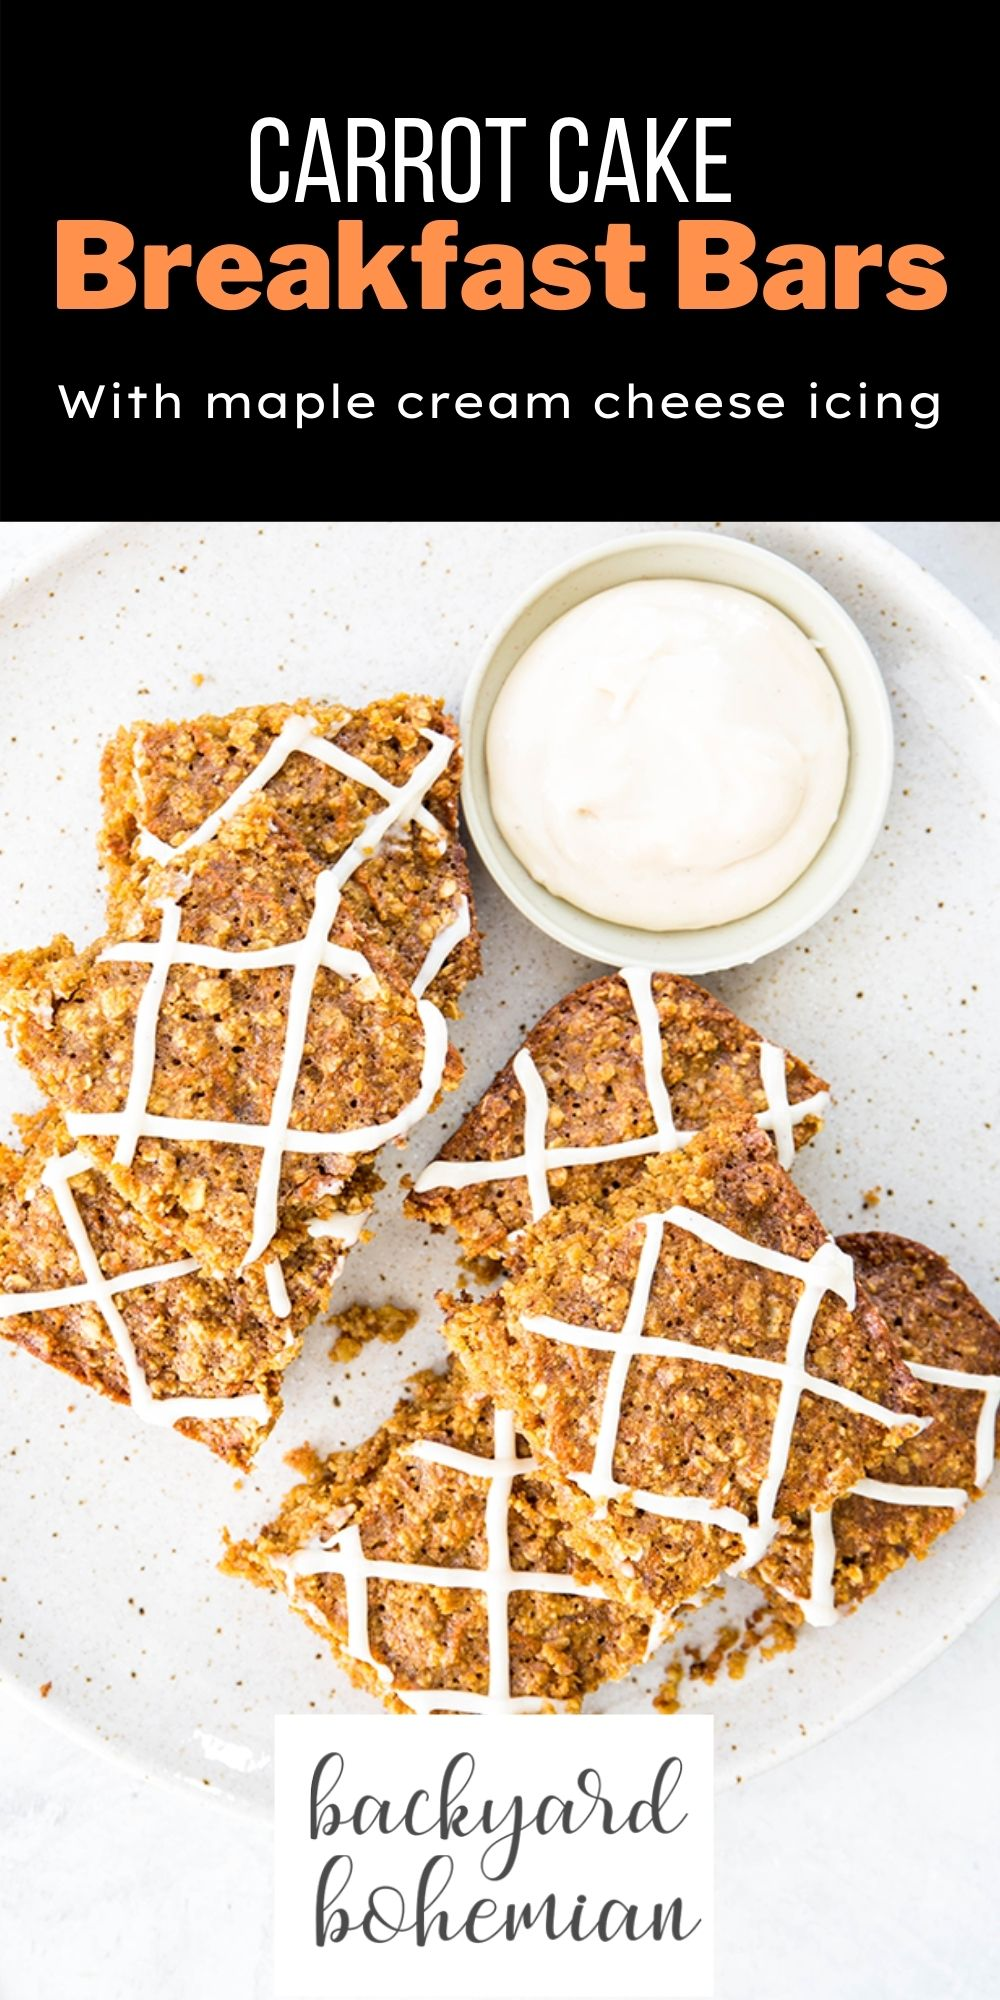 These gluten free carrot cake breakfast bars are made with freshly grated carrot, cinnamon, nutmeg, and oat flour for a tasty on the go breakfast. The maple cream cheese icing is literally the icing on the cake! via @foodhussy